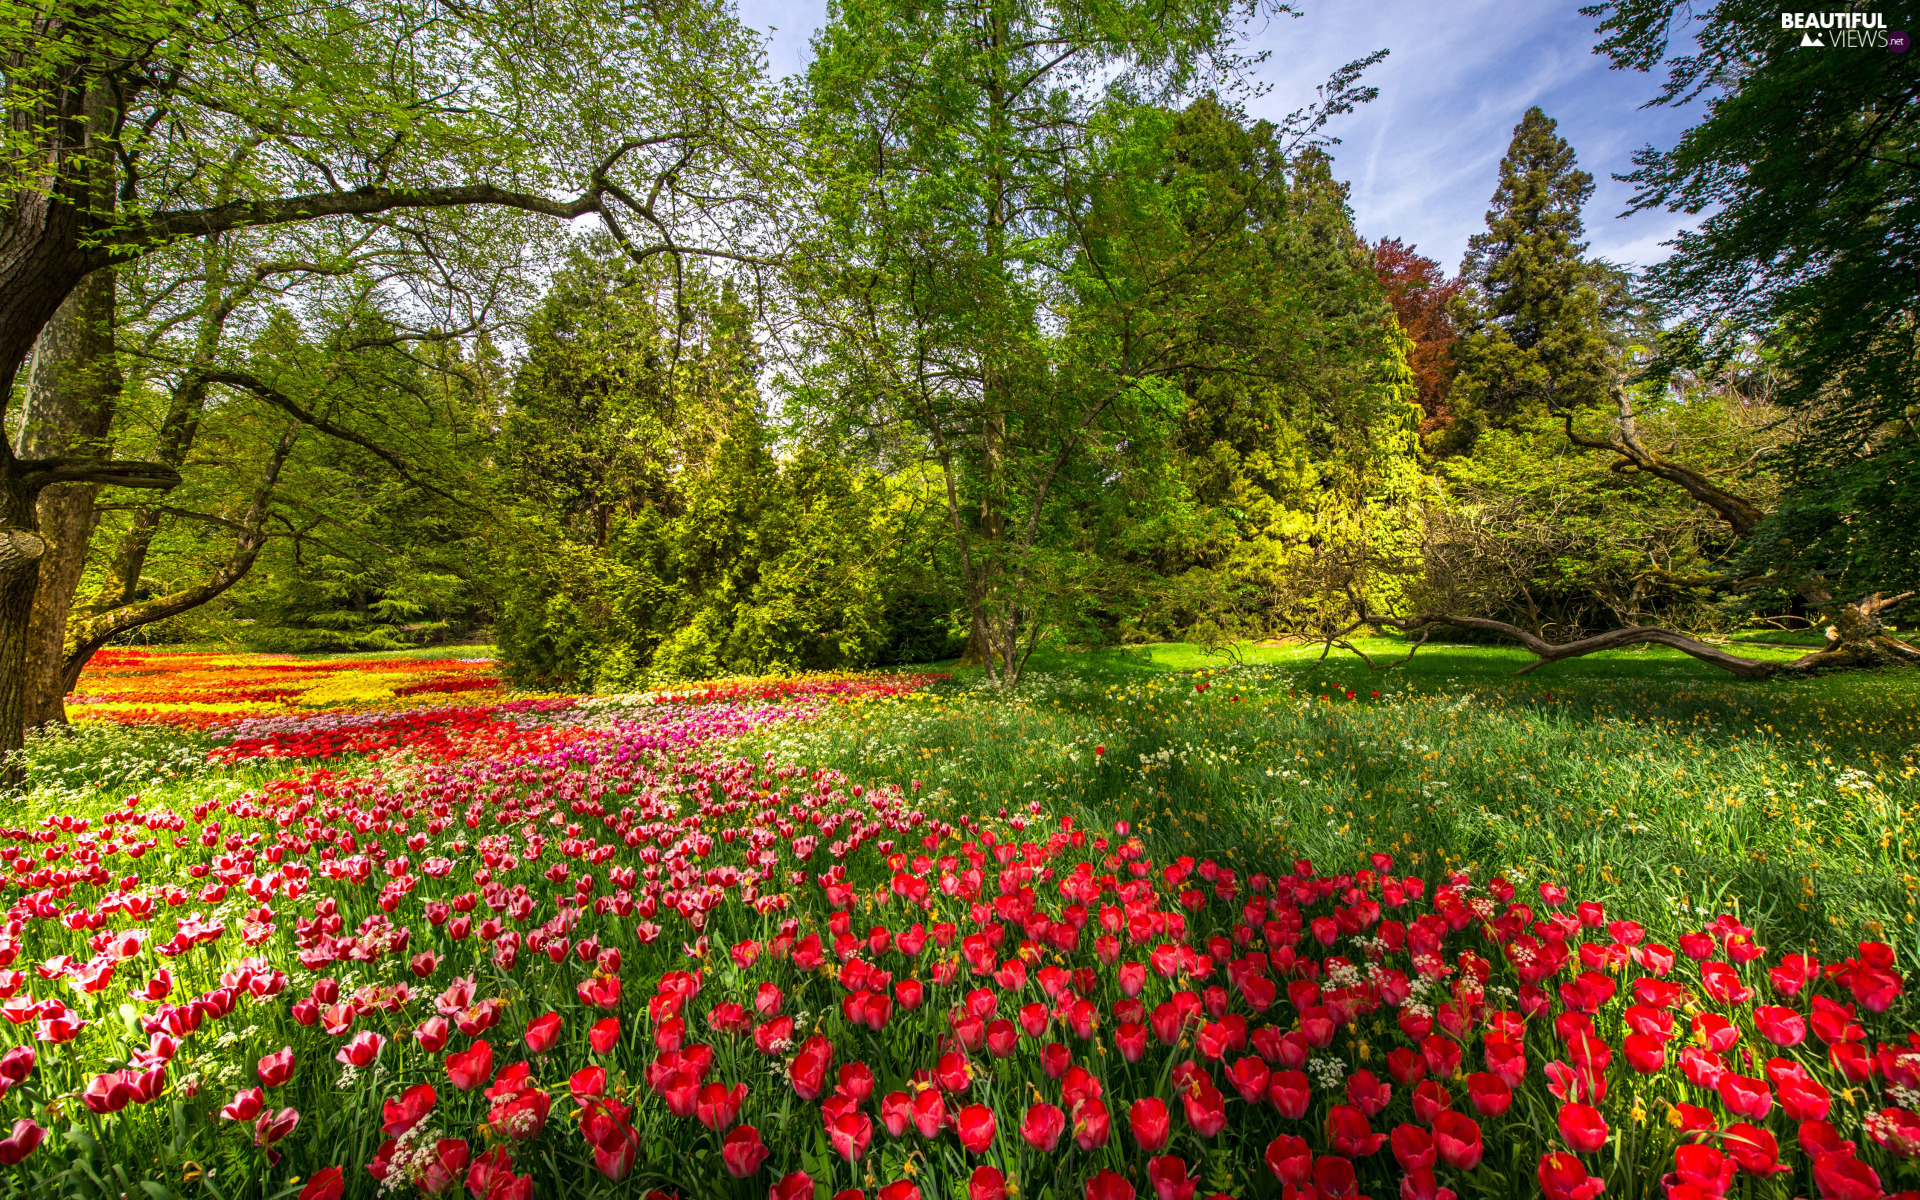 Tulips, color, Baden-W?rttemberg, viewes, trees, Mainau Island, Flowers, Spring, Germany, branch pics, Garden, Park